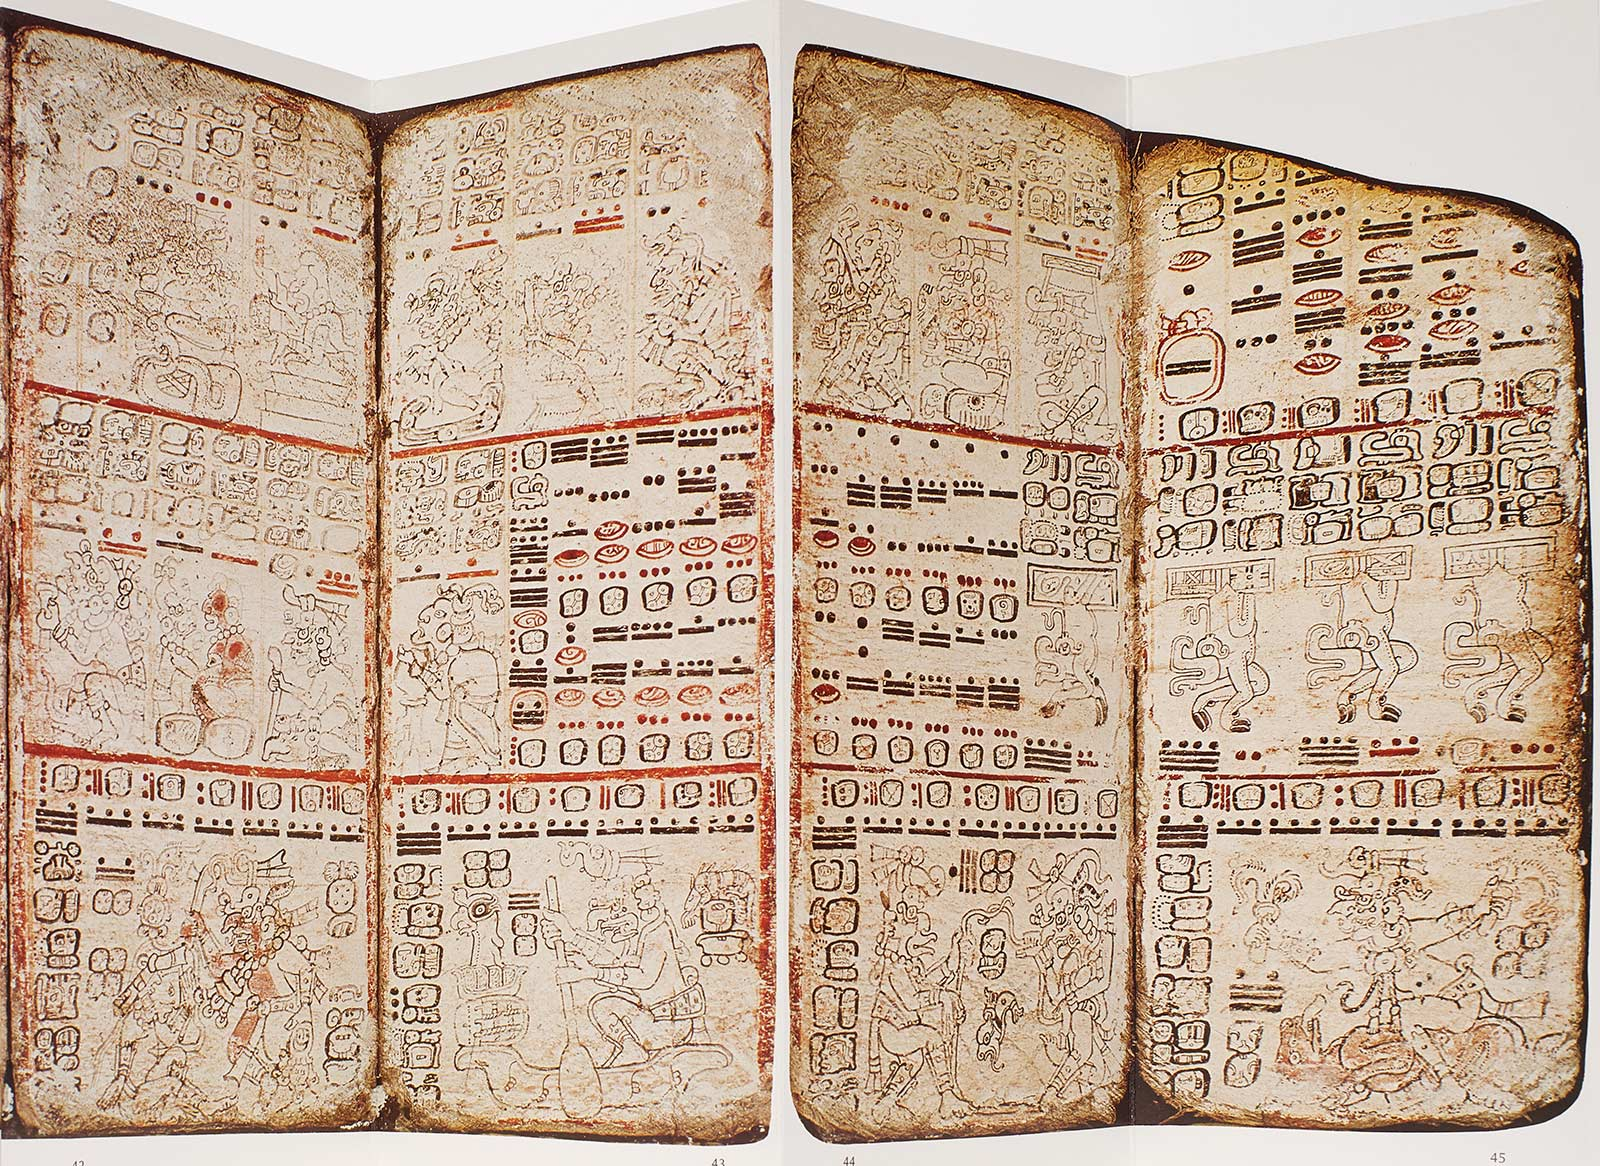 Four folios covered in drawings and glyphs.